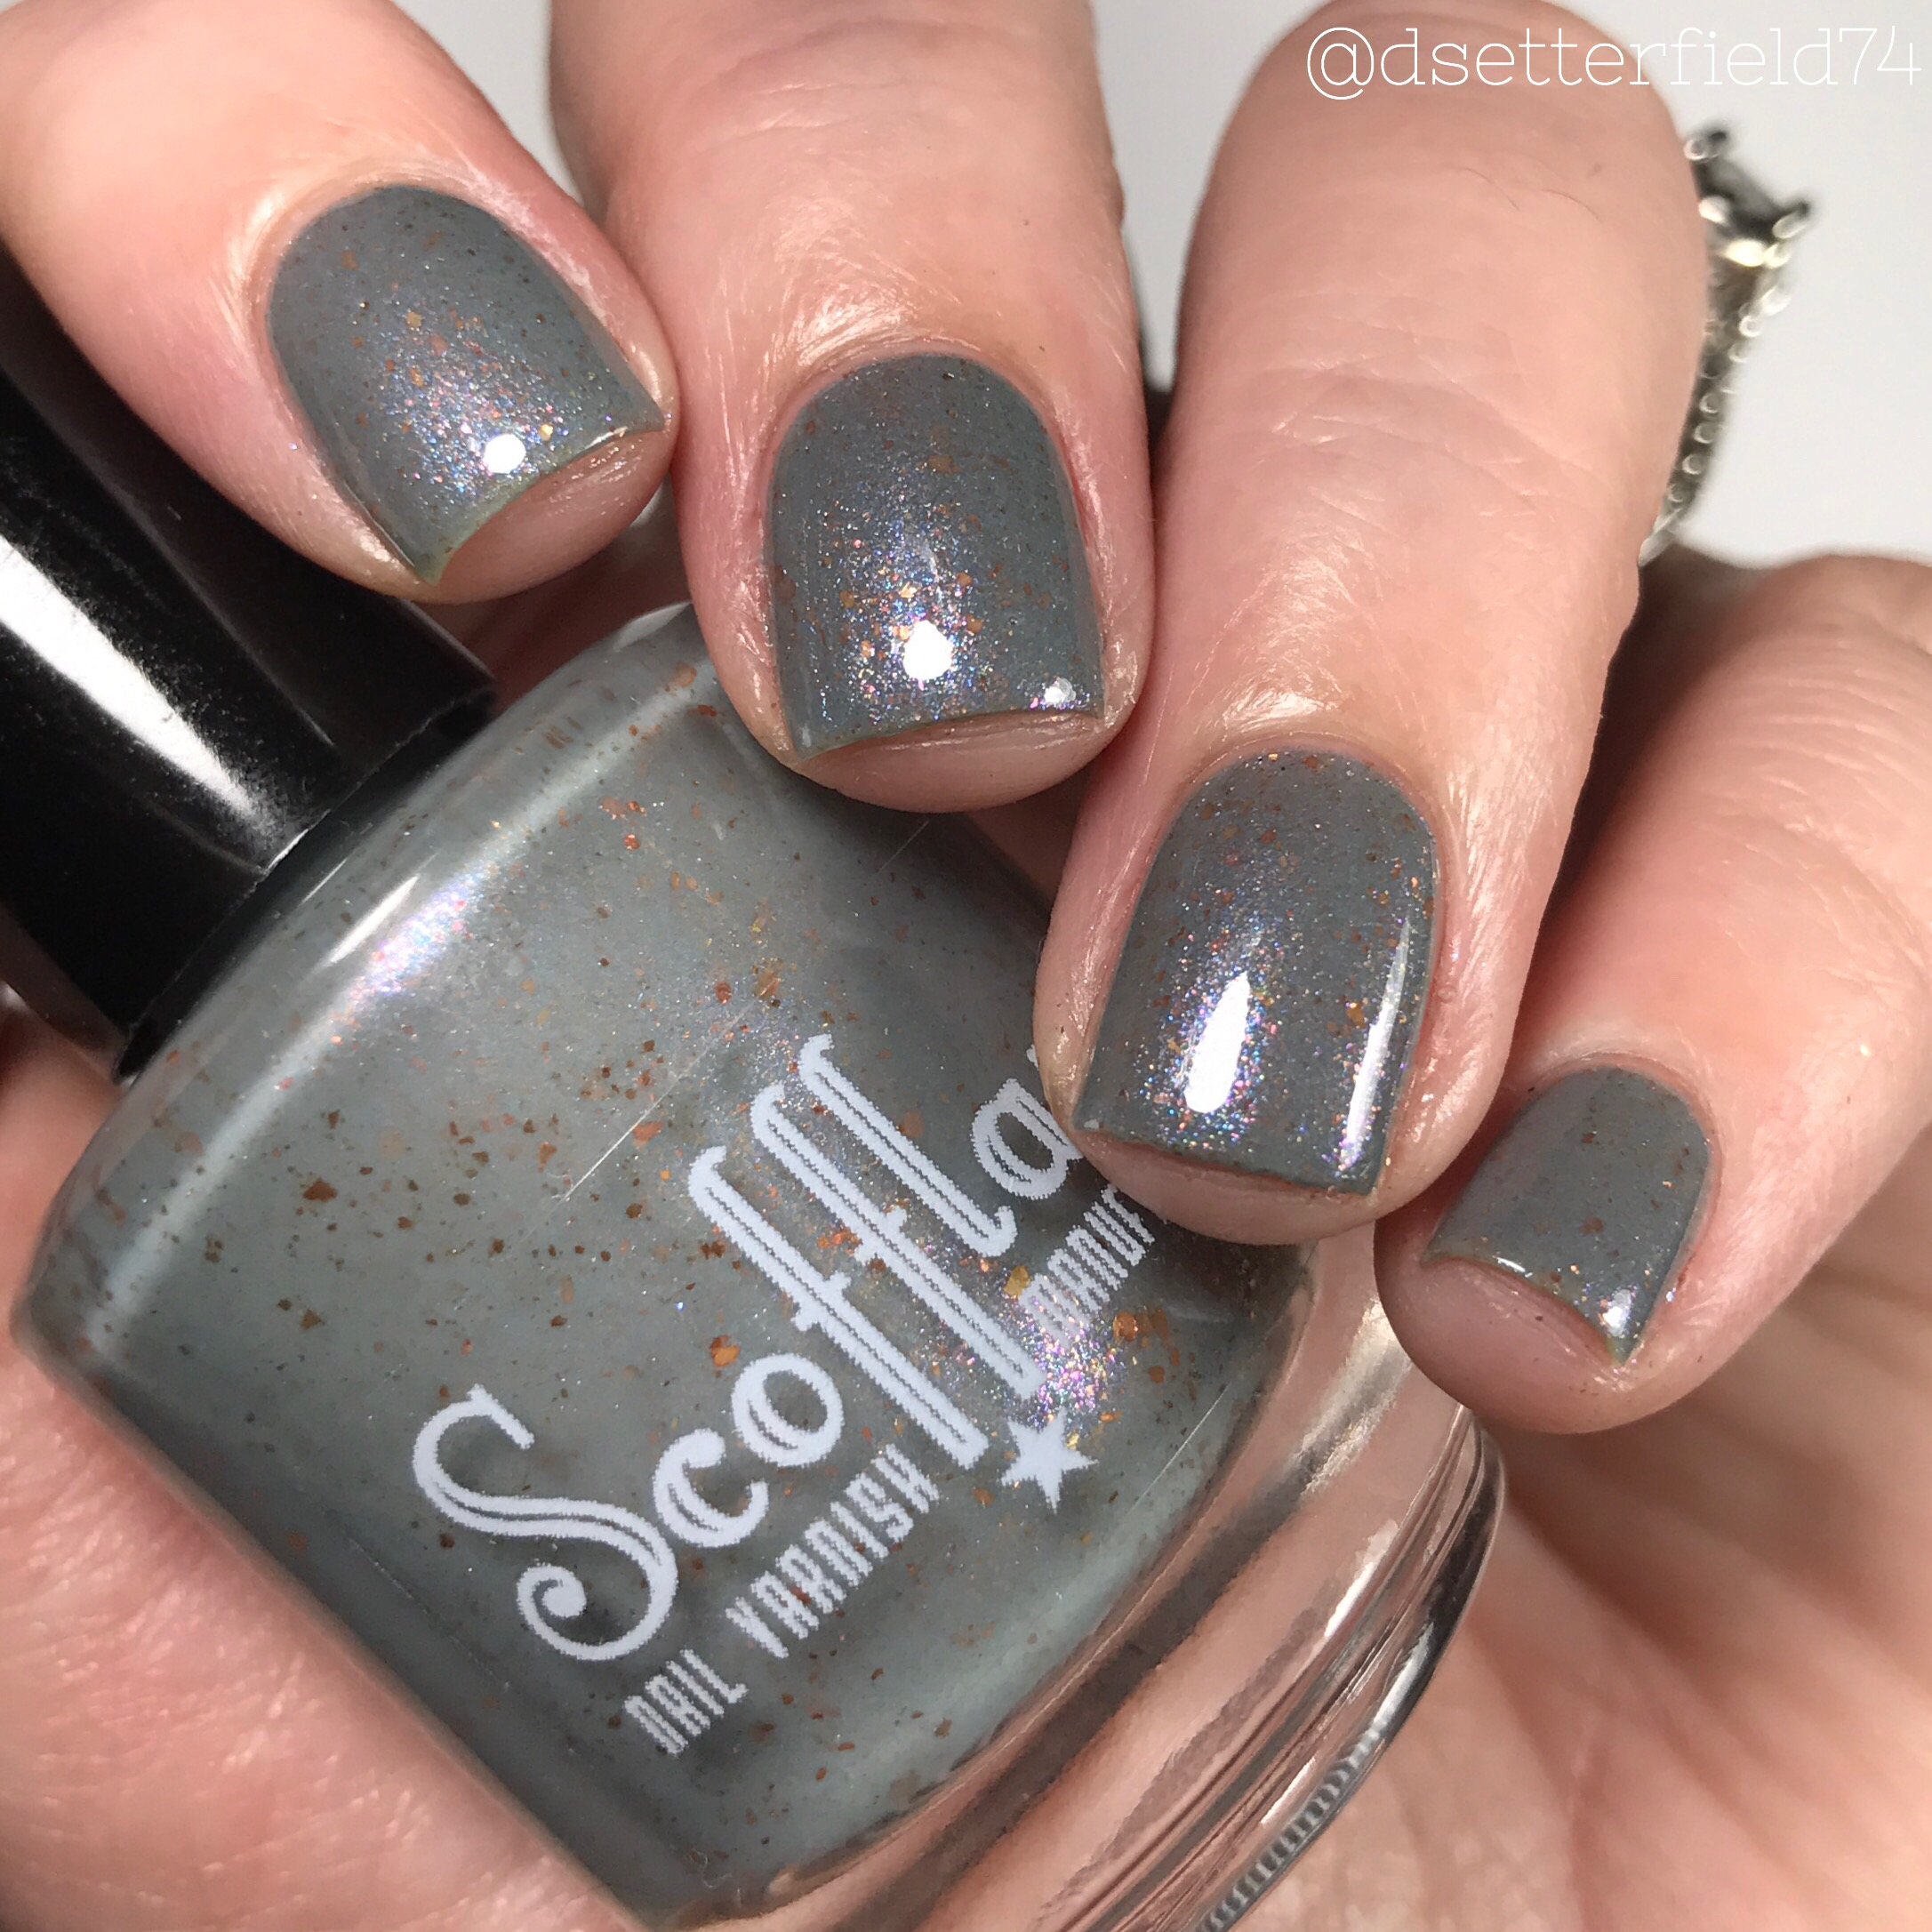 Scofflaw Varnish: Polish Con Limited Editions | Snacks On Rotation